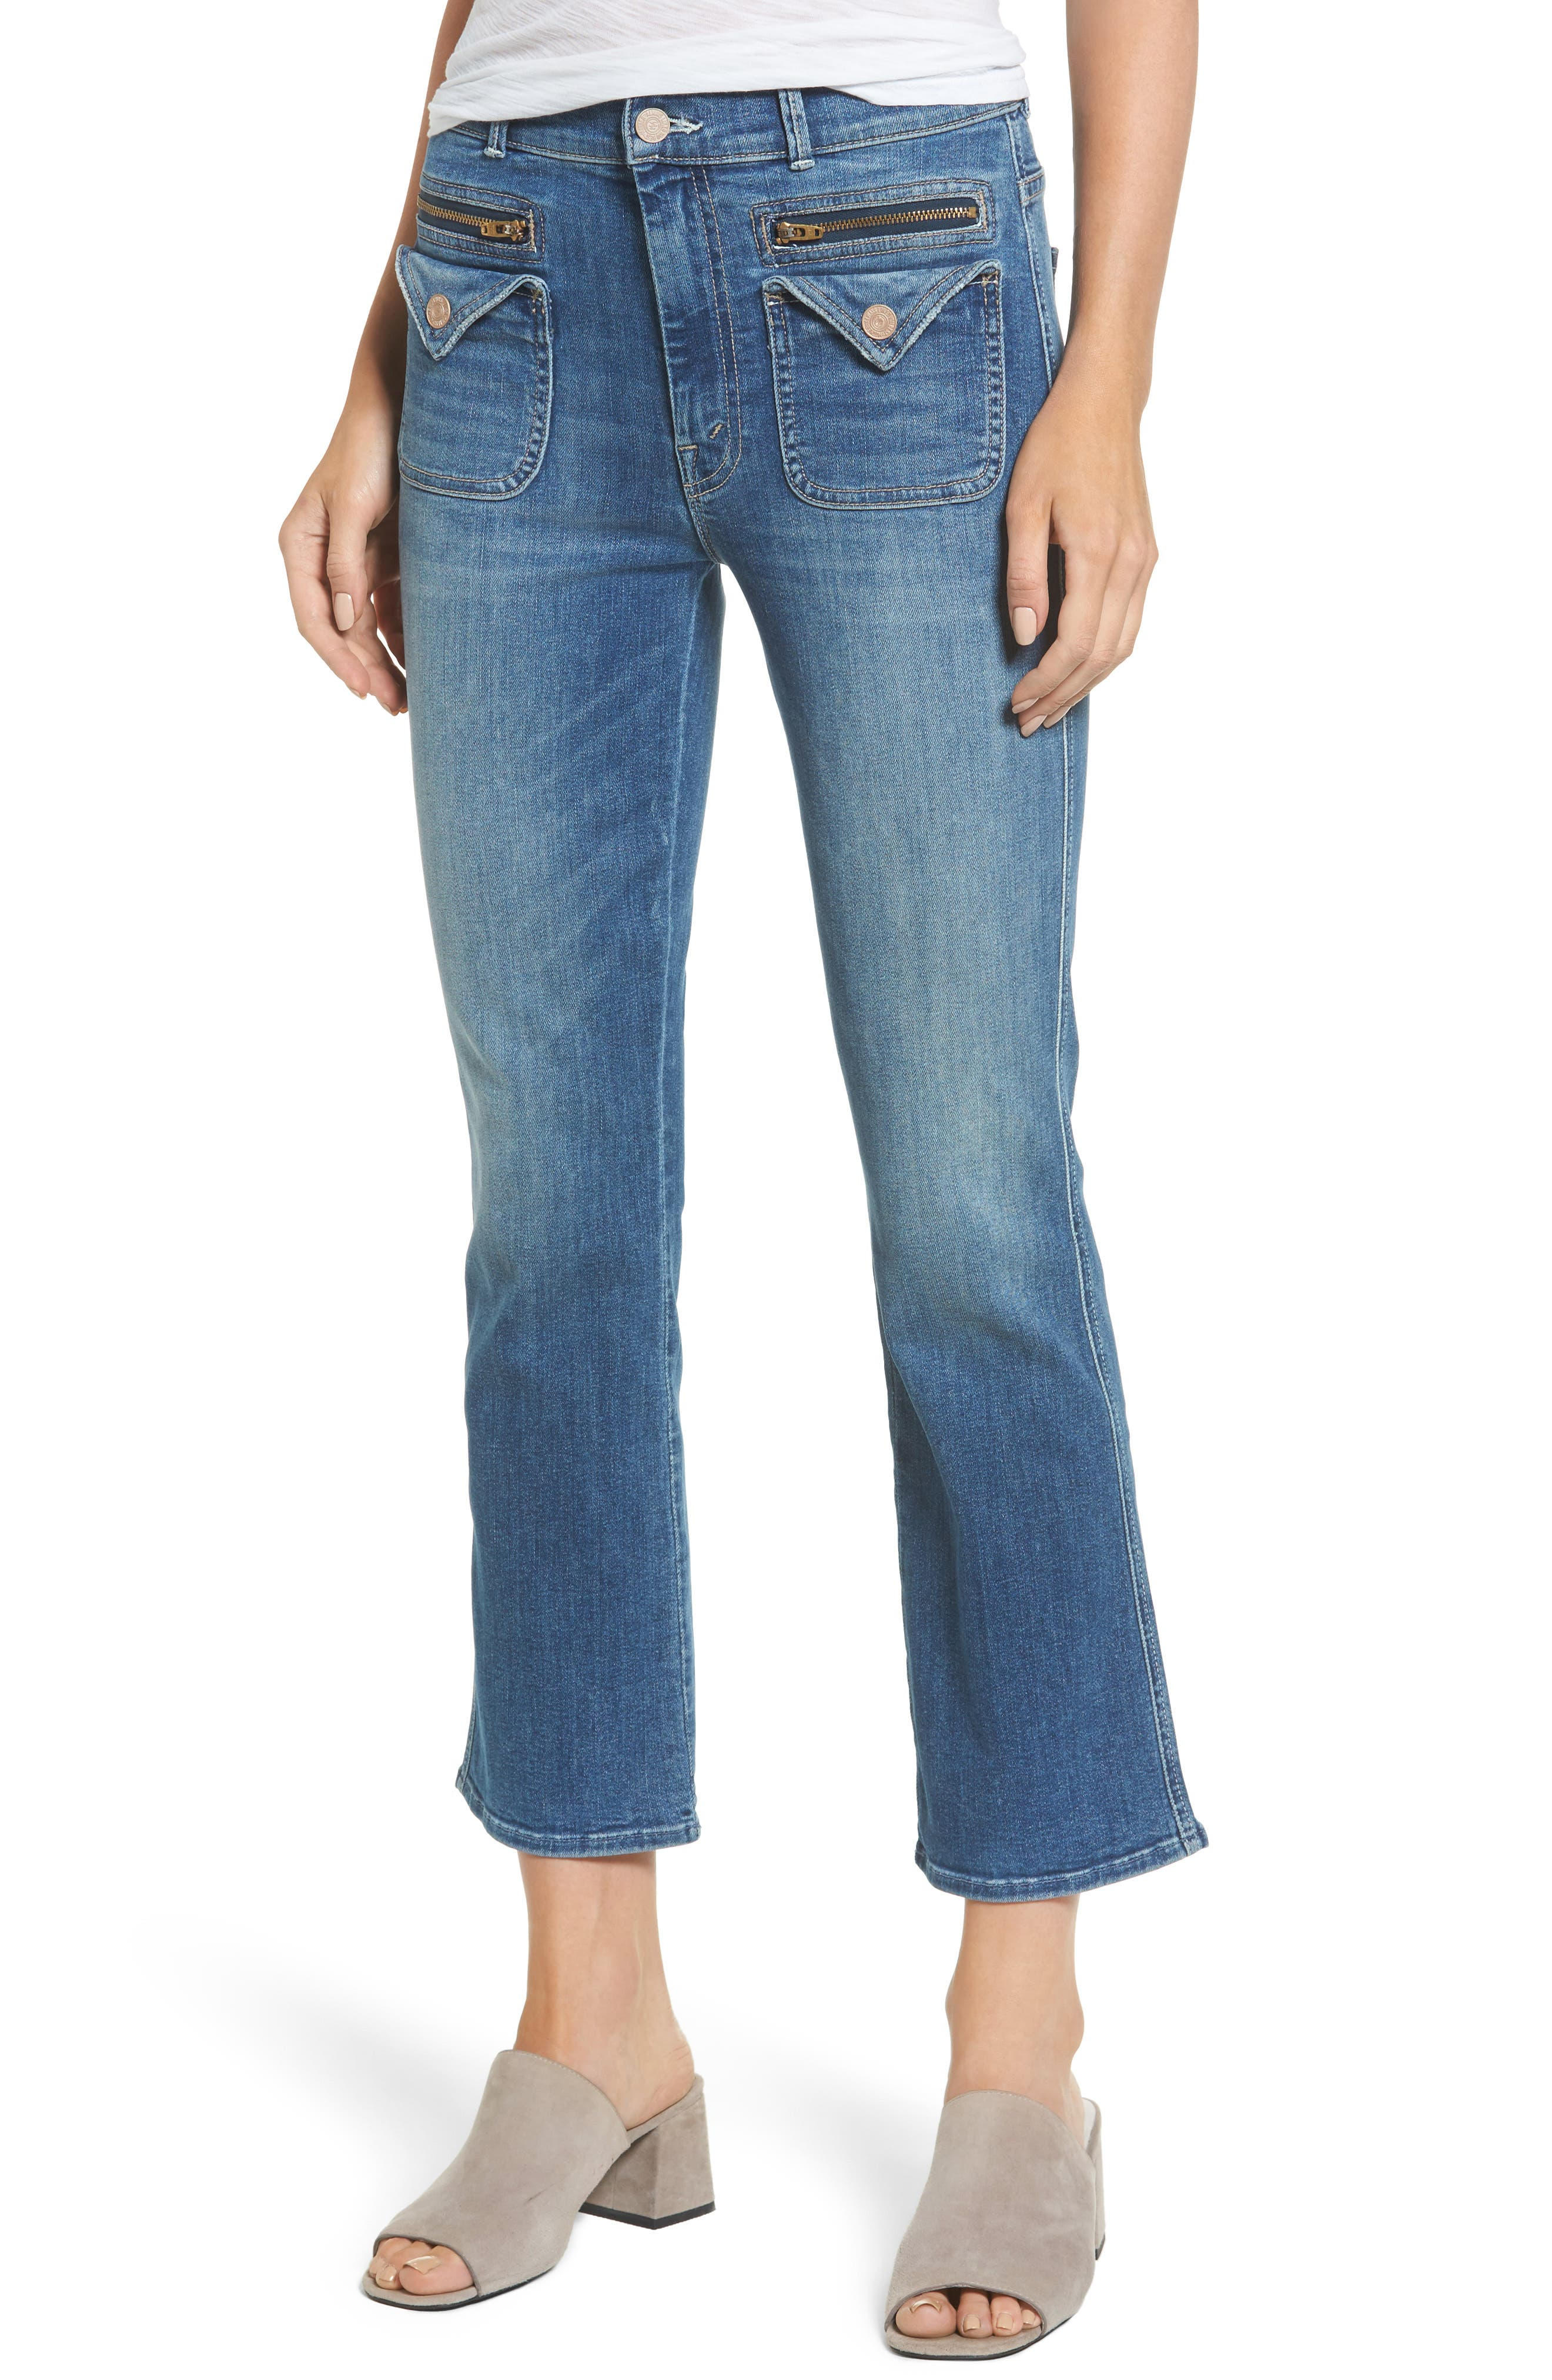 Alternate Image 1 Selected - MOTHER The Insider High Waist Crop Bootcut Jeans (Racing Heart)